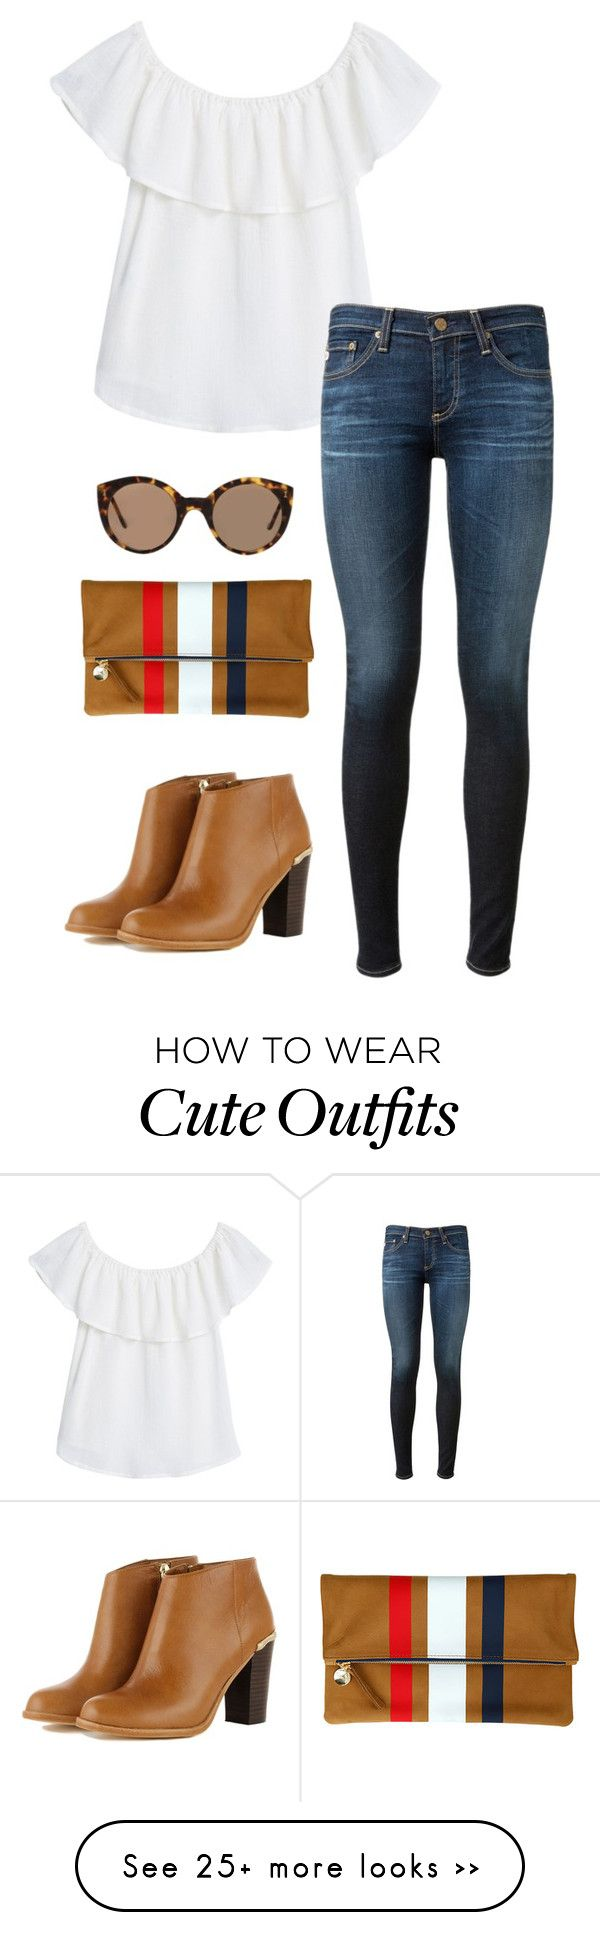 """""""cute fall transitioning outfit"""" by kcunningham1 on Polyvore featuring MANGO, AG Adriano Goldschmied, Clare V. and Illesteva"""